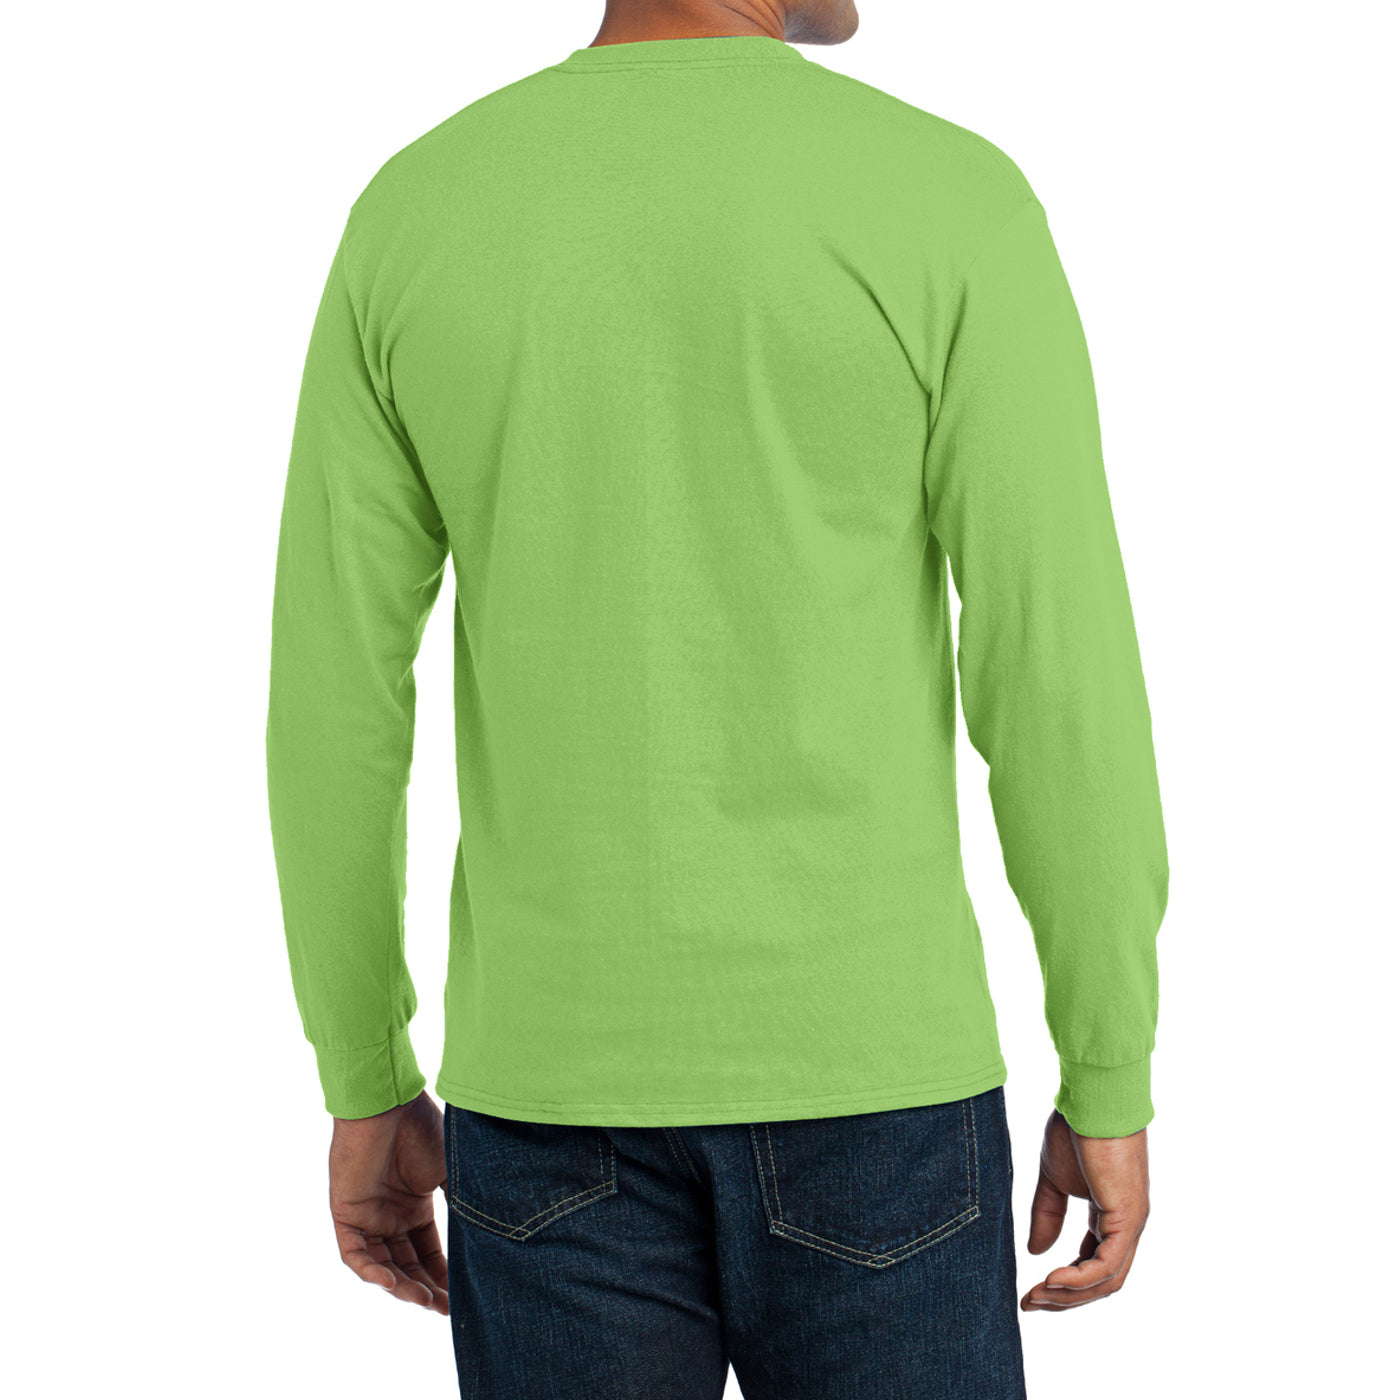 Men's Long Sleeve Core Blend Tee - Lime – Back